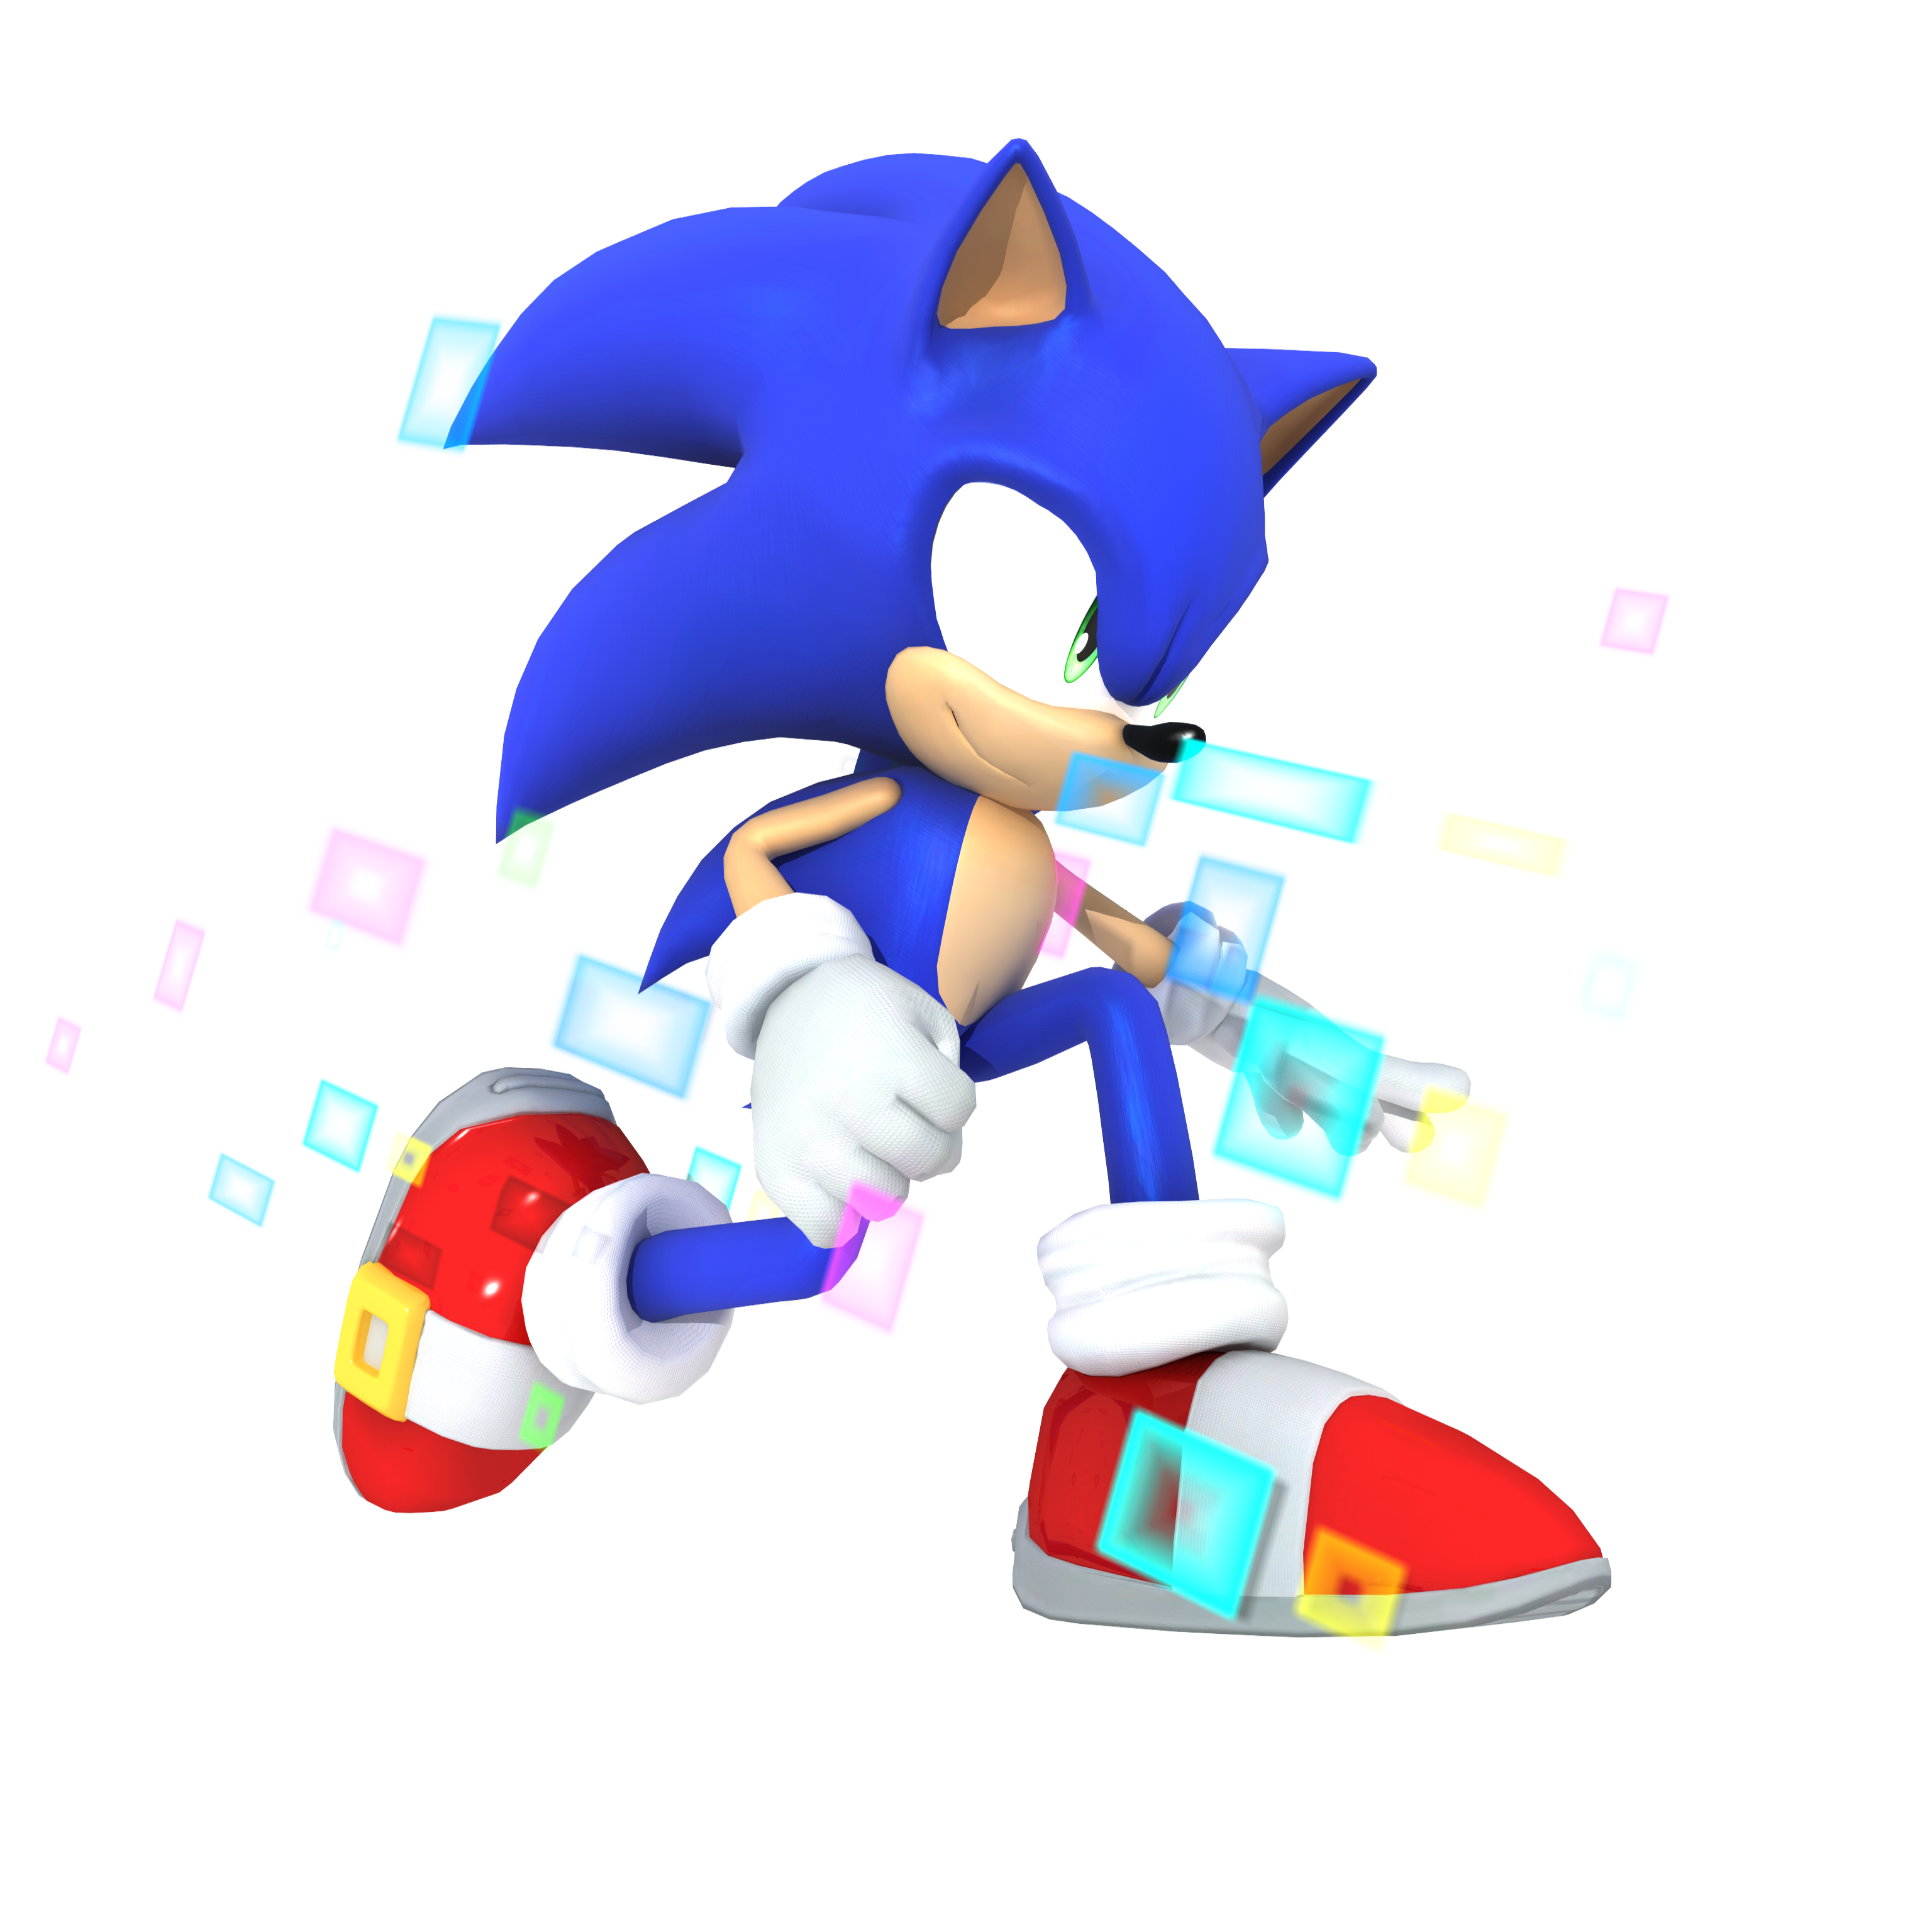 Sonic_and_the_secret_colors__by_cyberphonic4d-d87e831.png